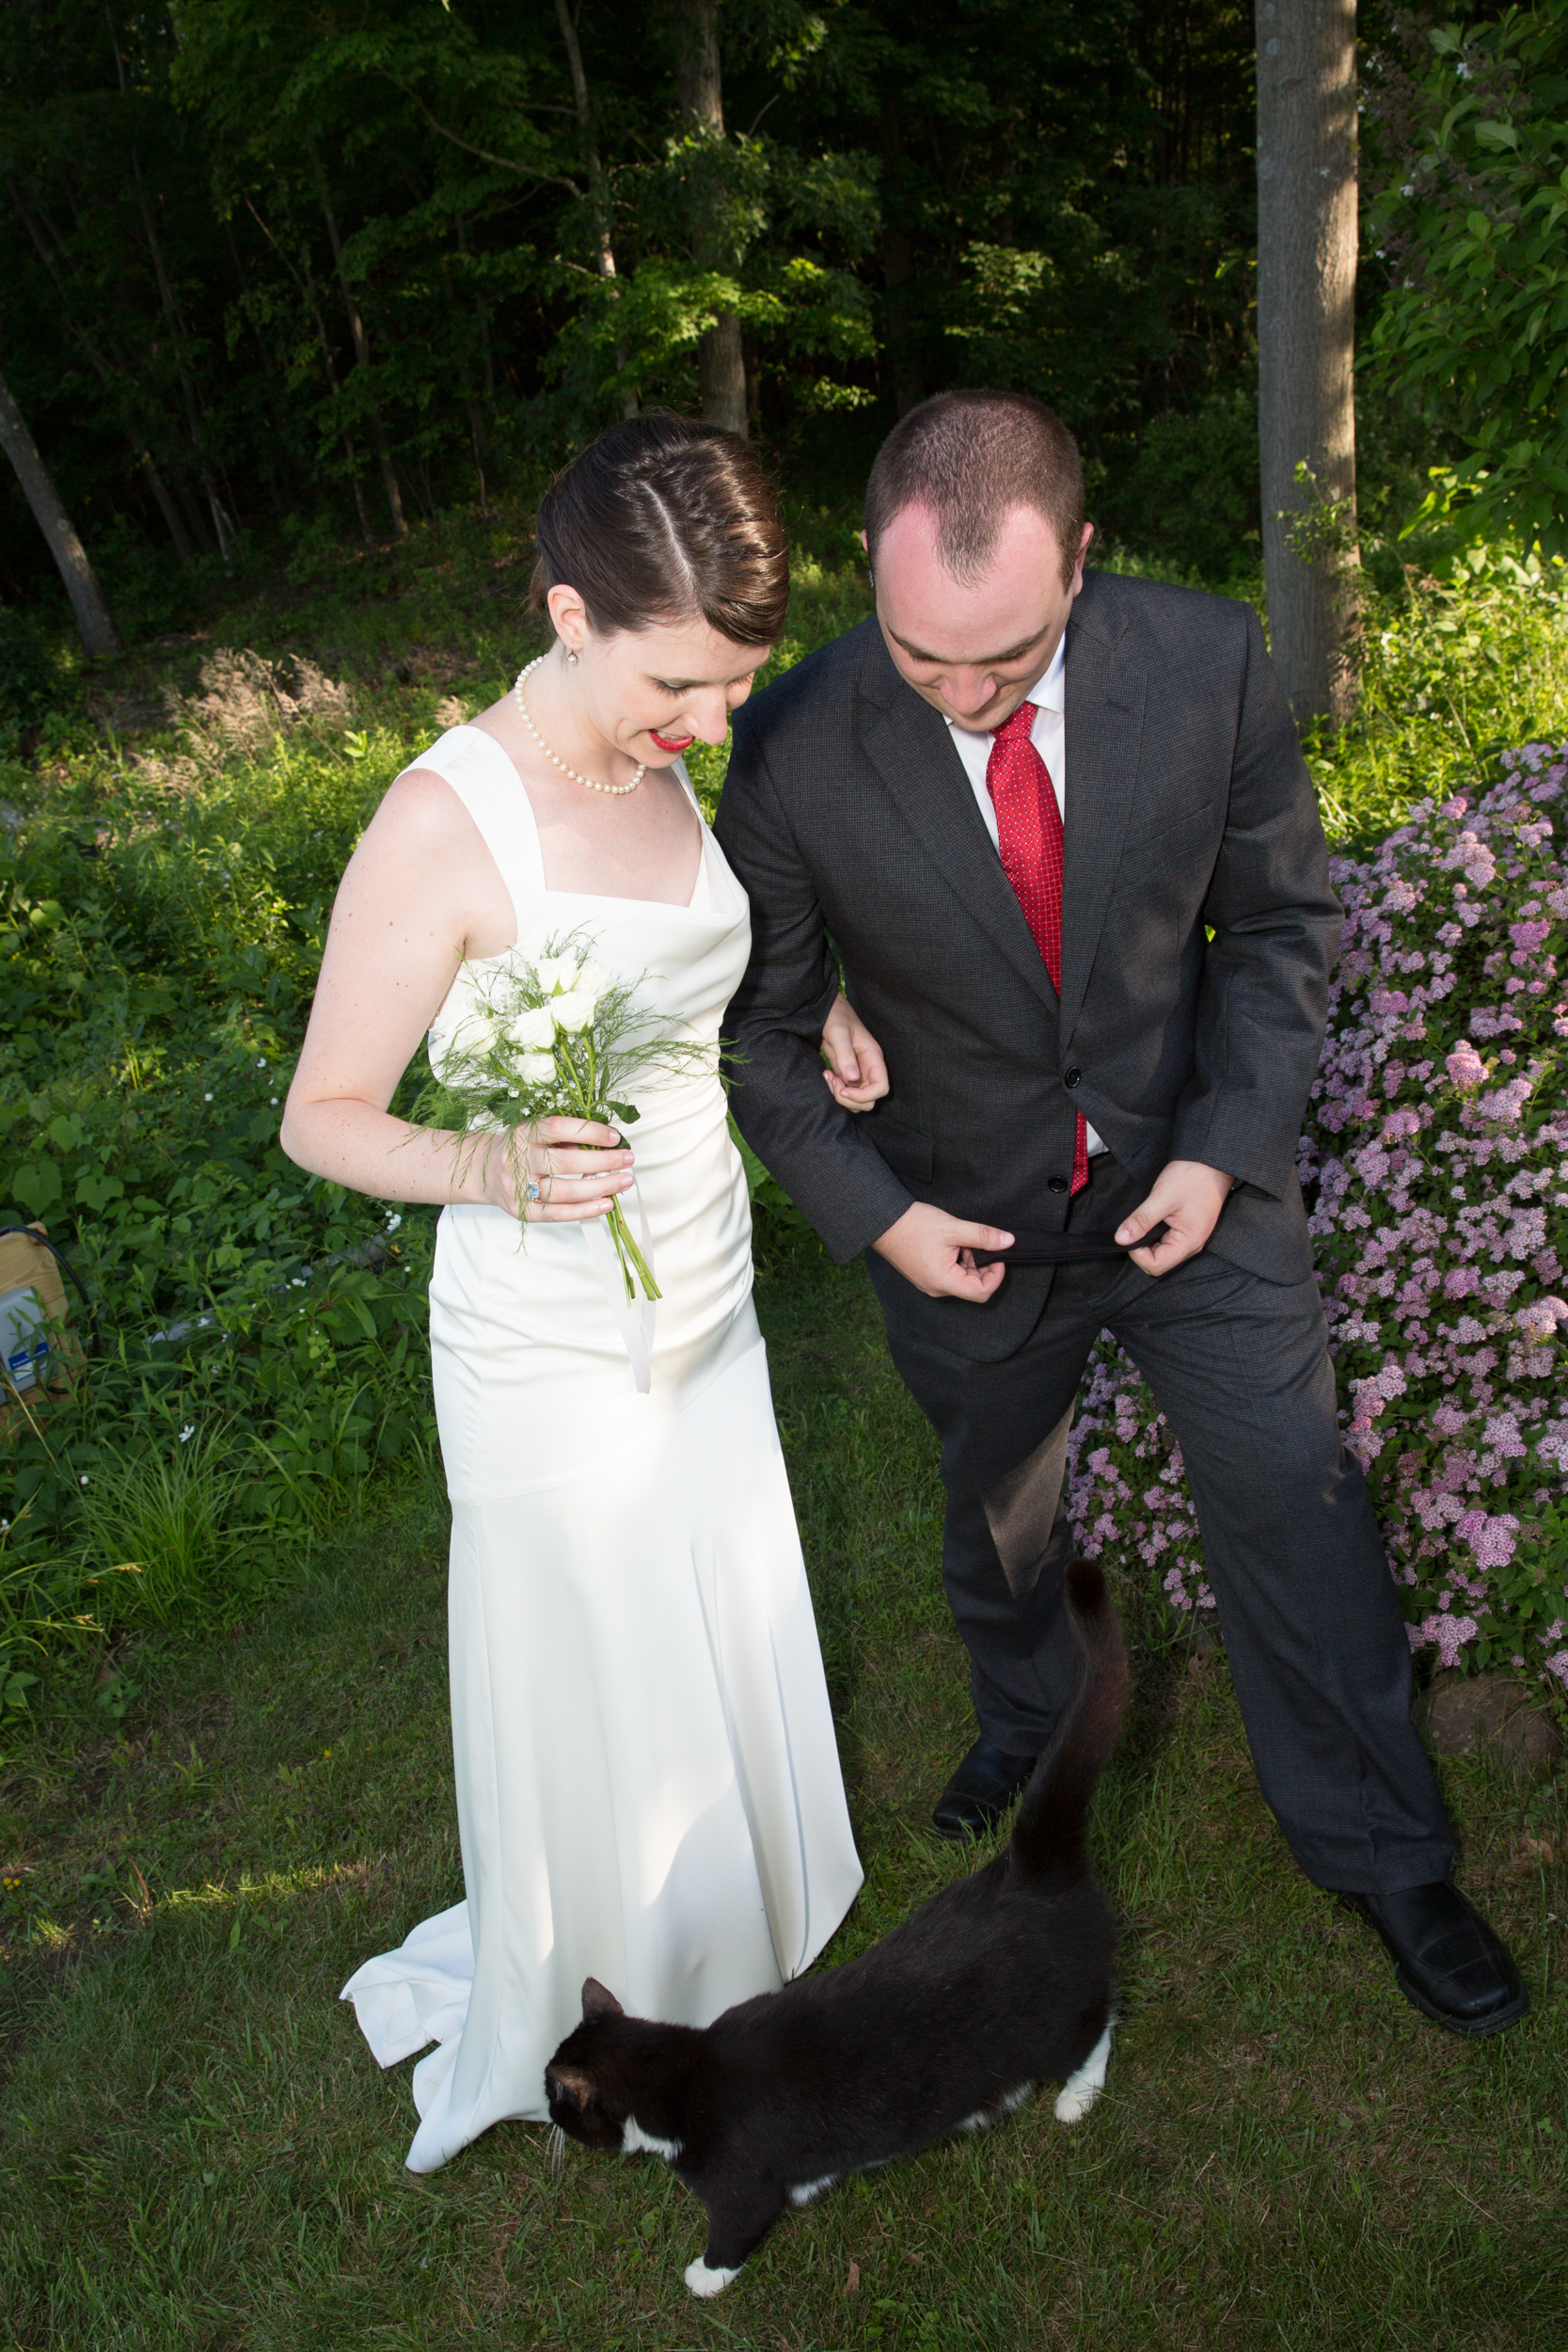 Wedding in Saugerties with the bride, groom and cat.